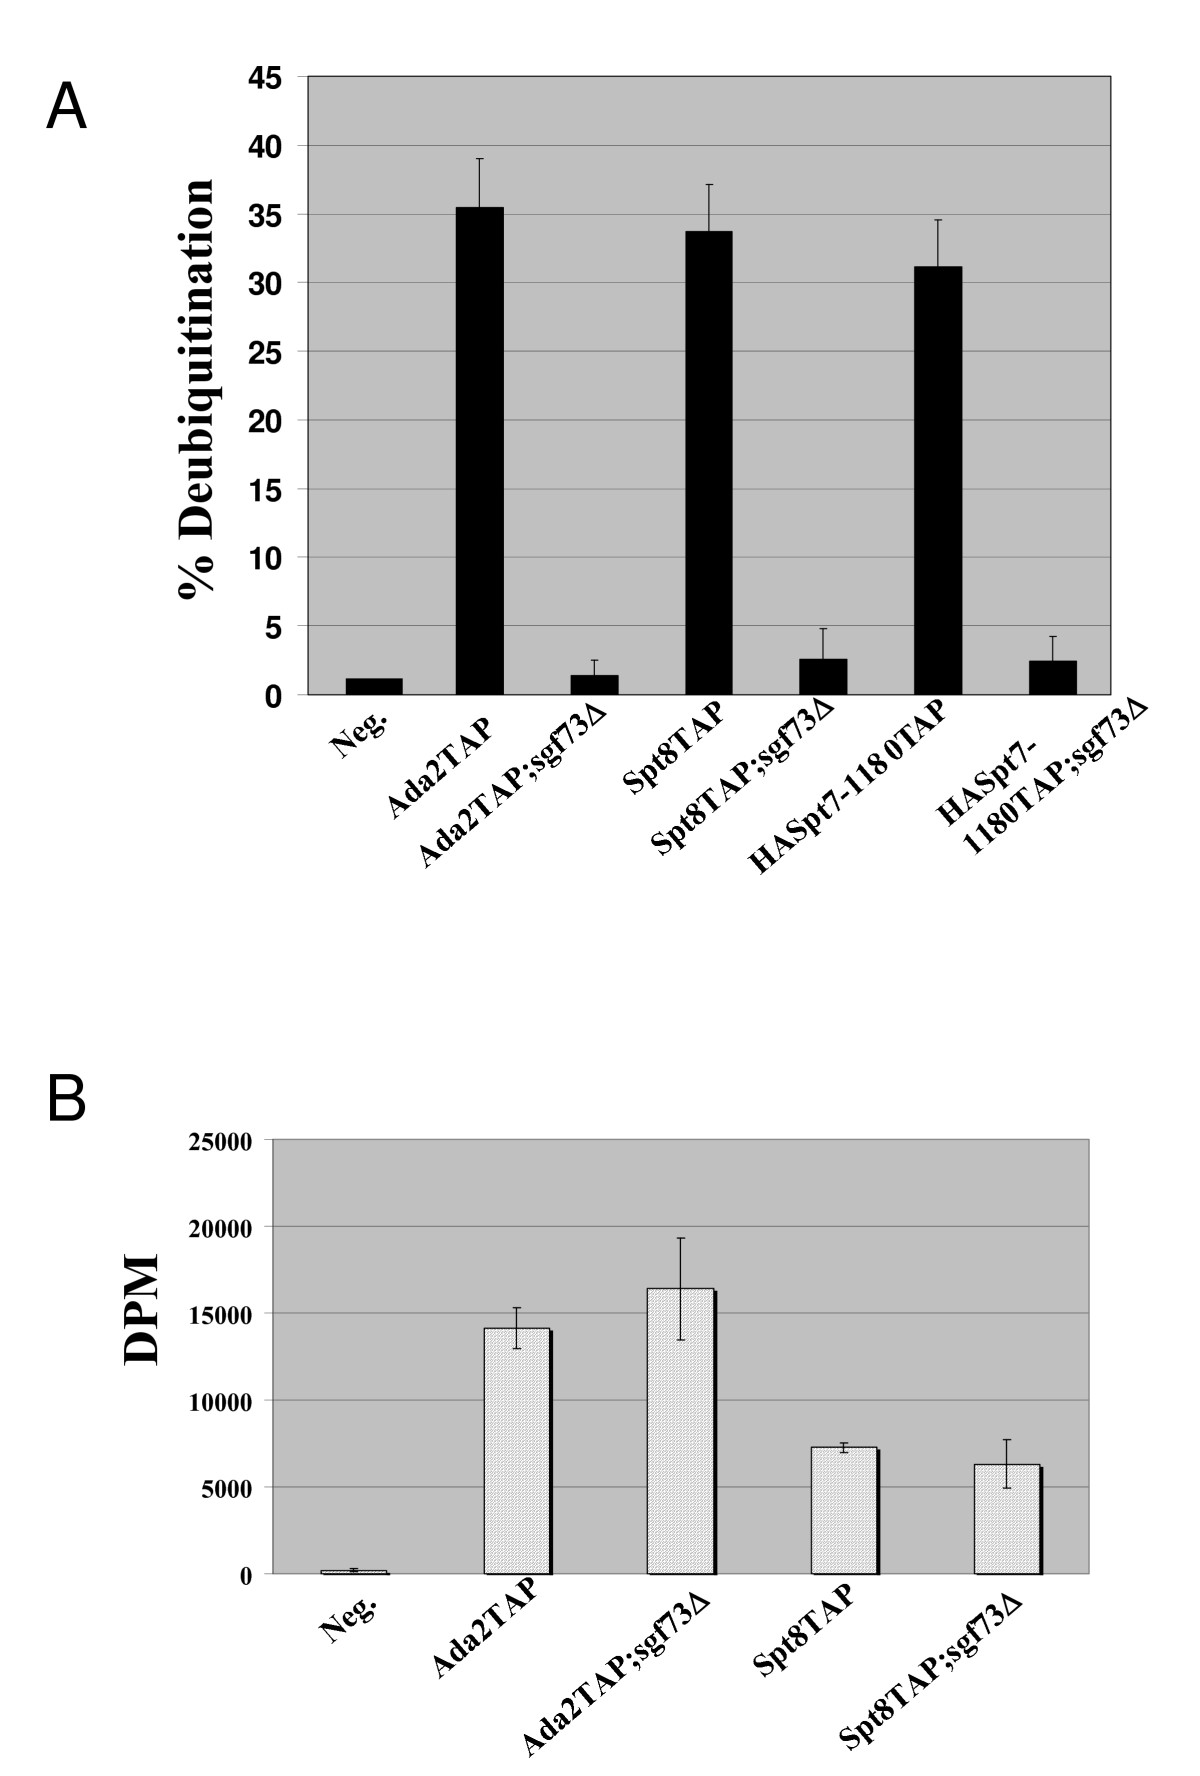 http://static-content.springer.com/image/art%3A10.1186%2F1756-8935-2-2/MediaObjects/13072_2008_Article_12_Fig4_HTML.jpg